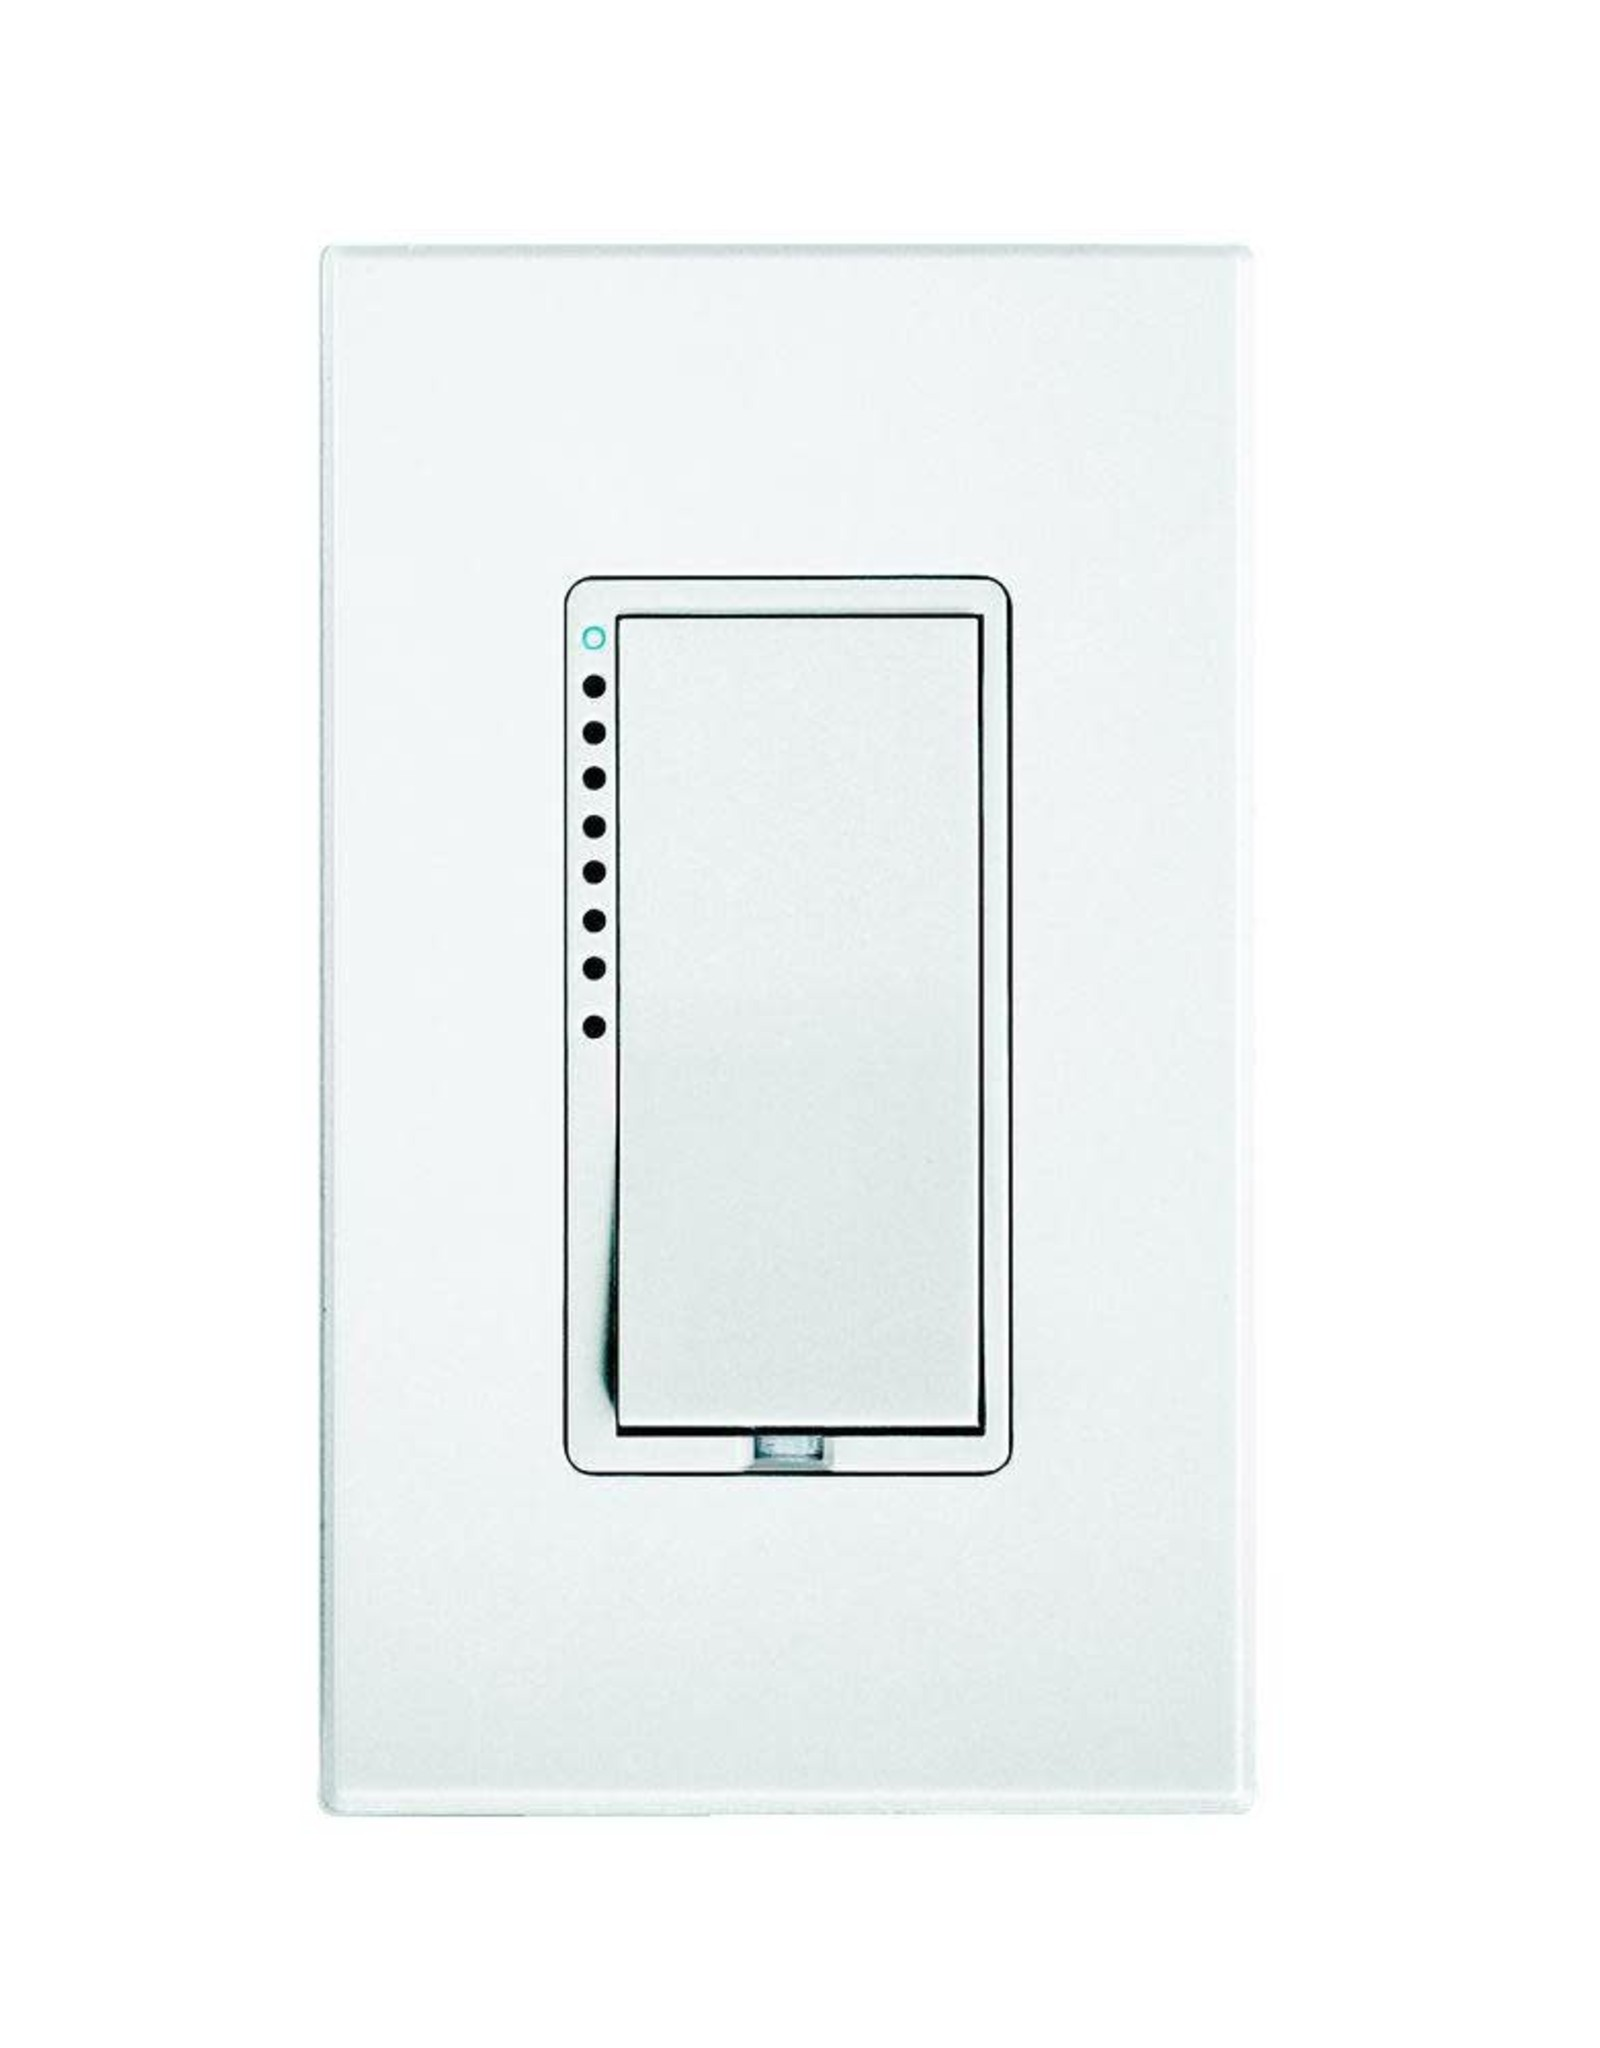 Insteon Switch SwitchLinc 1800W On/Off (Dual-Band) - White